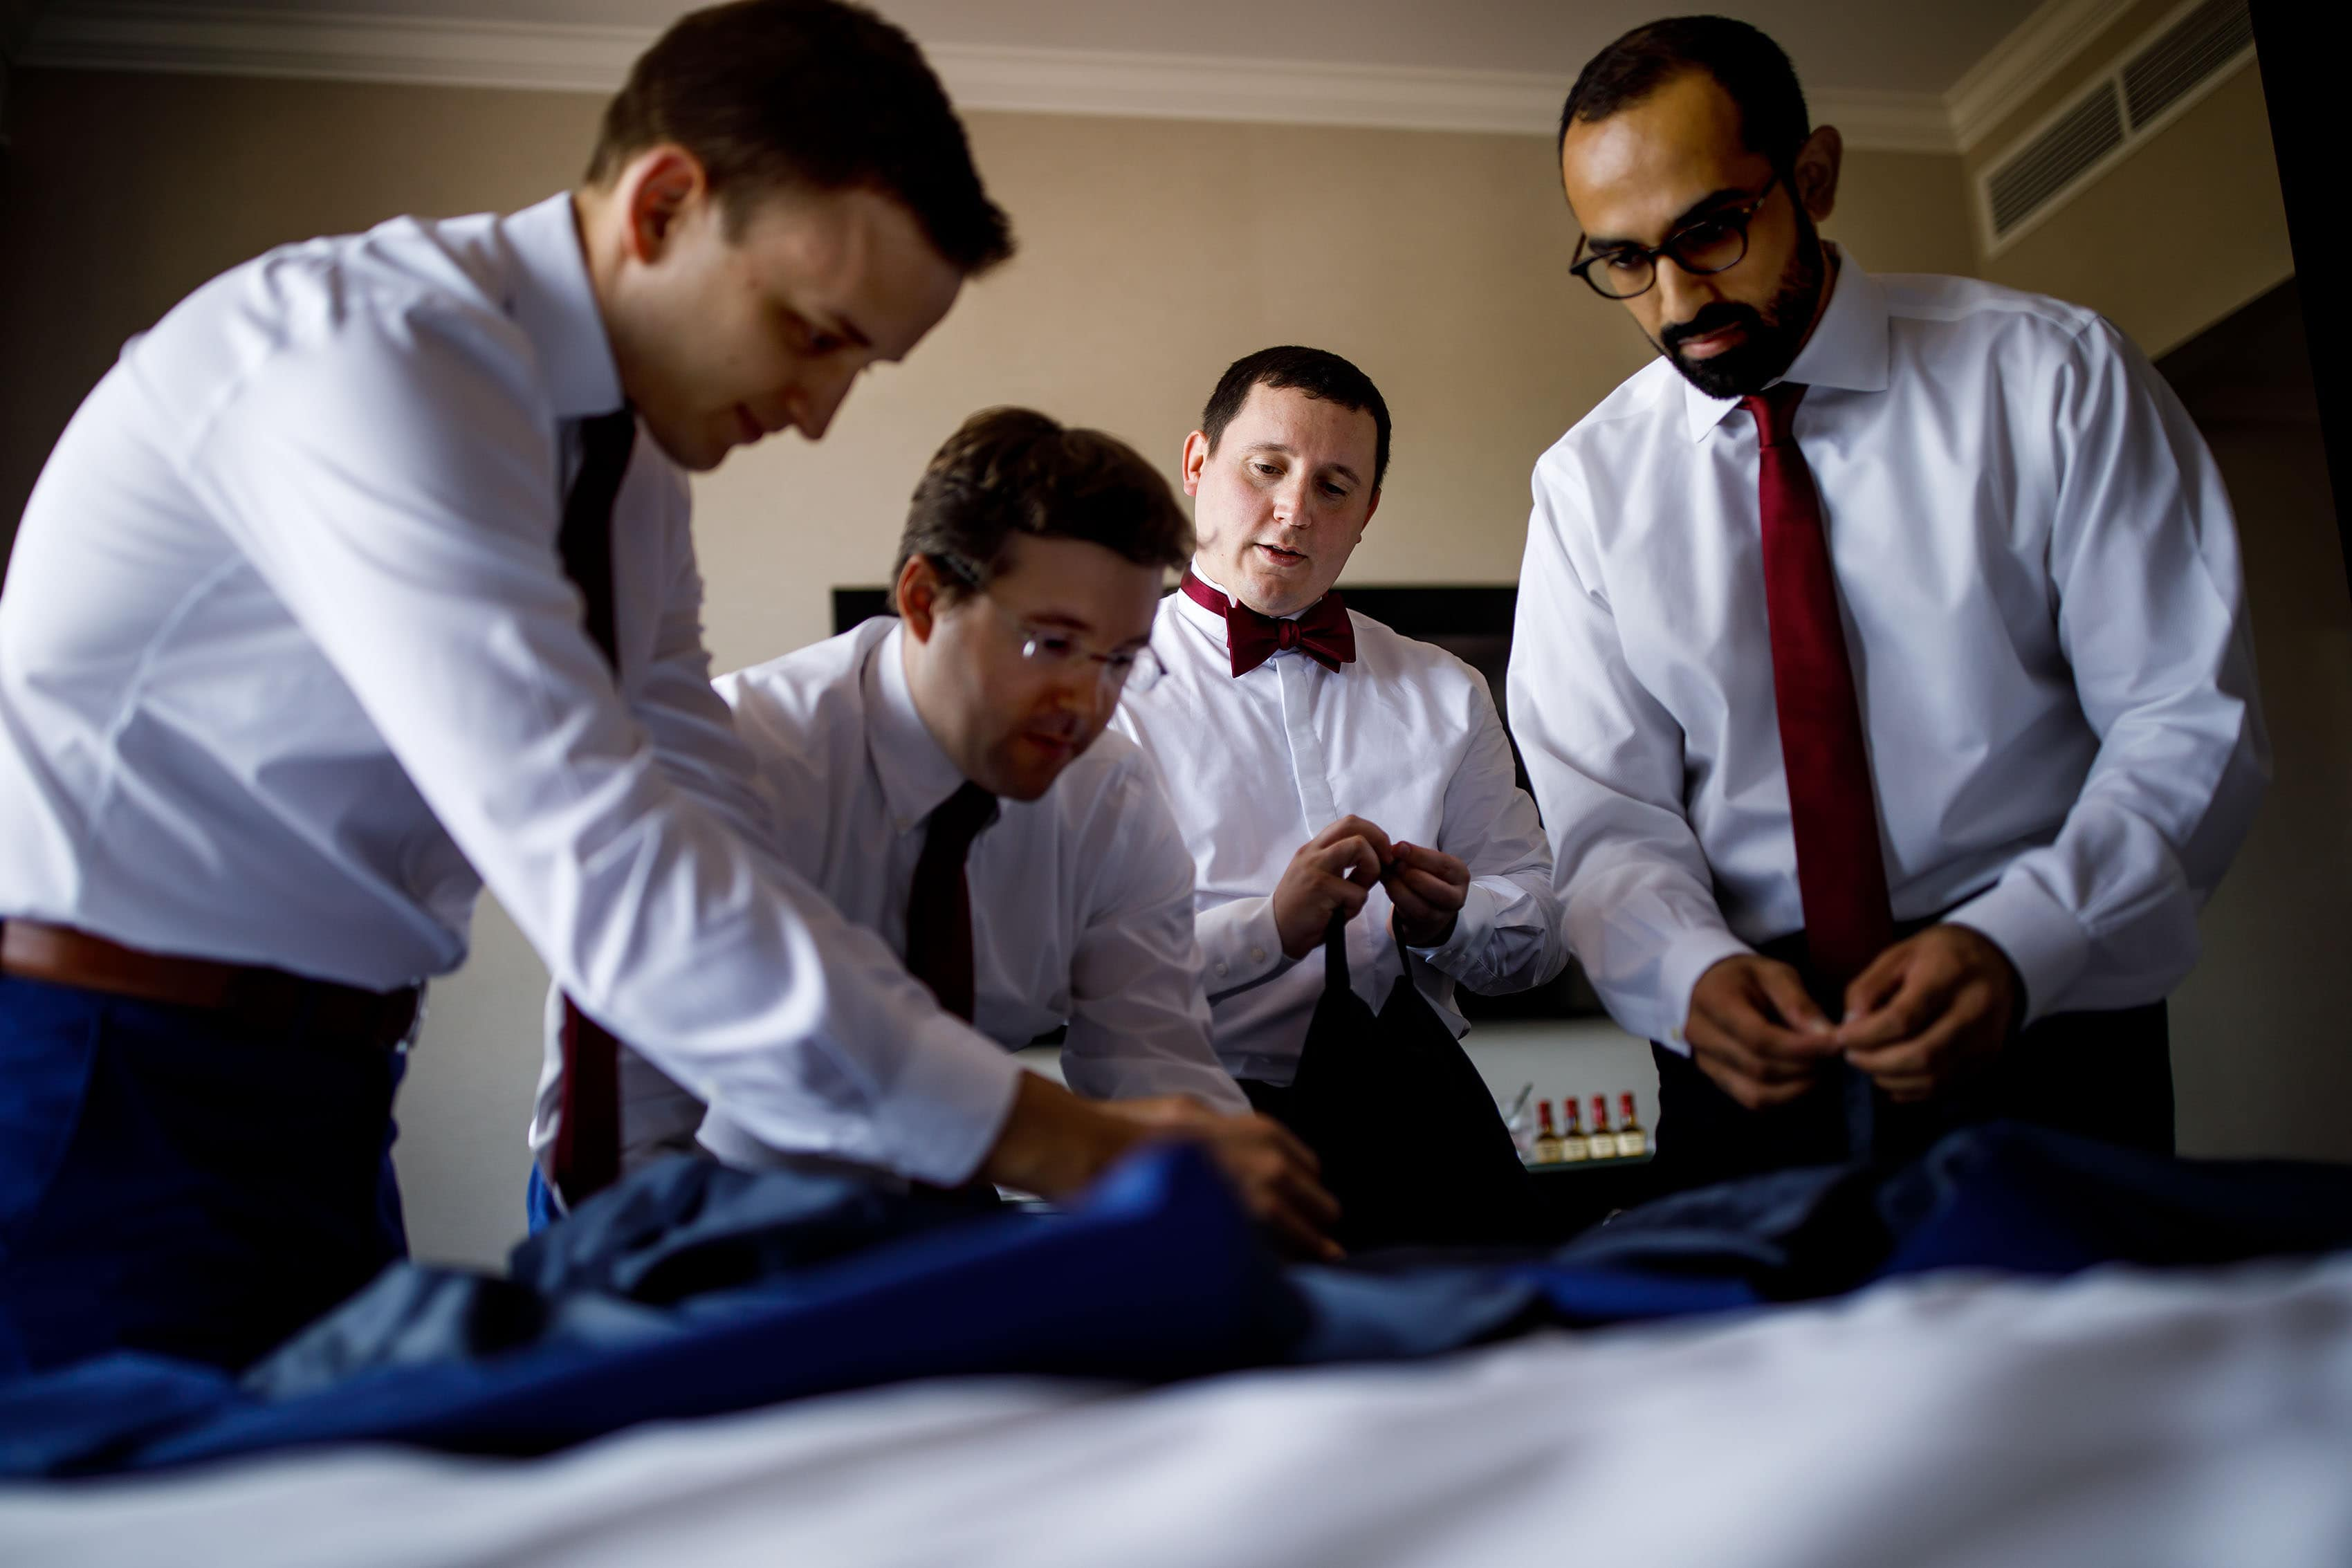 The groom and groomsmen get ready at La Banque hotel